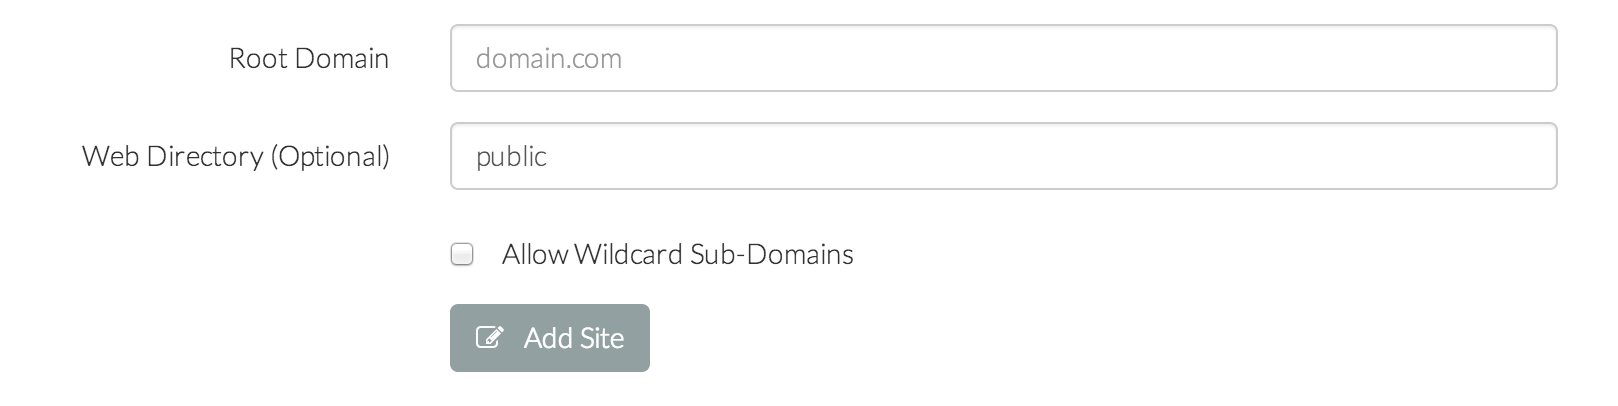 Forge Add Wildcard Subdomain Checkbox